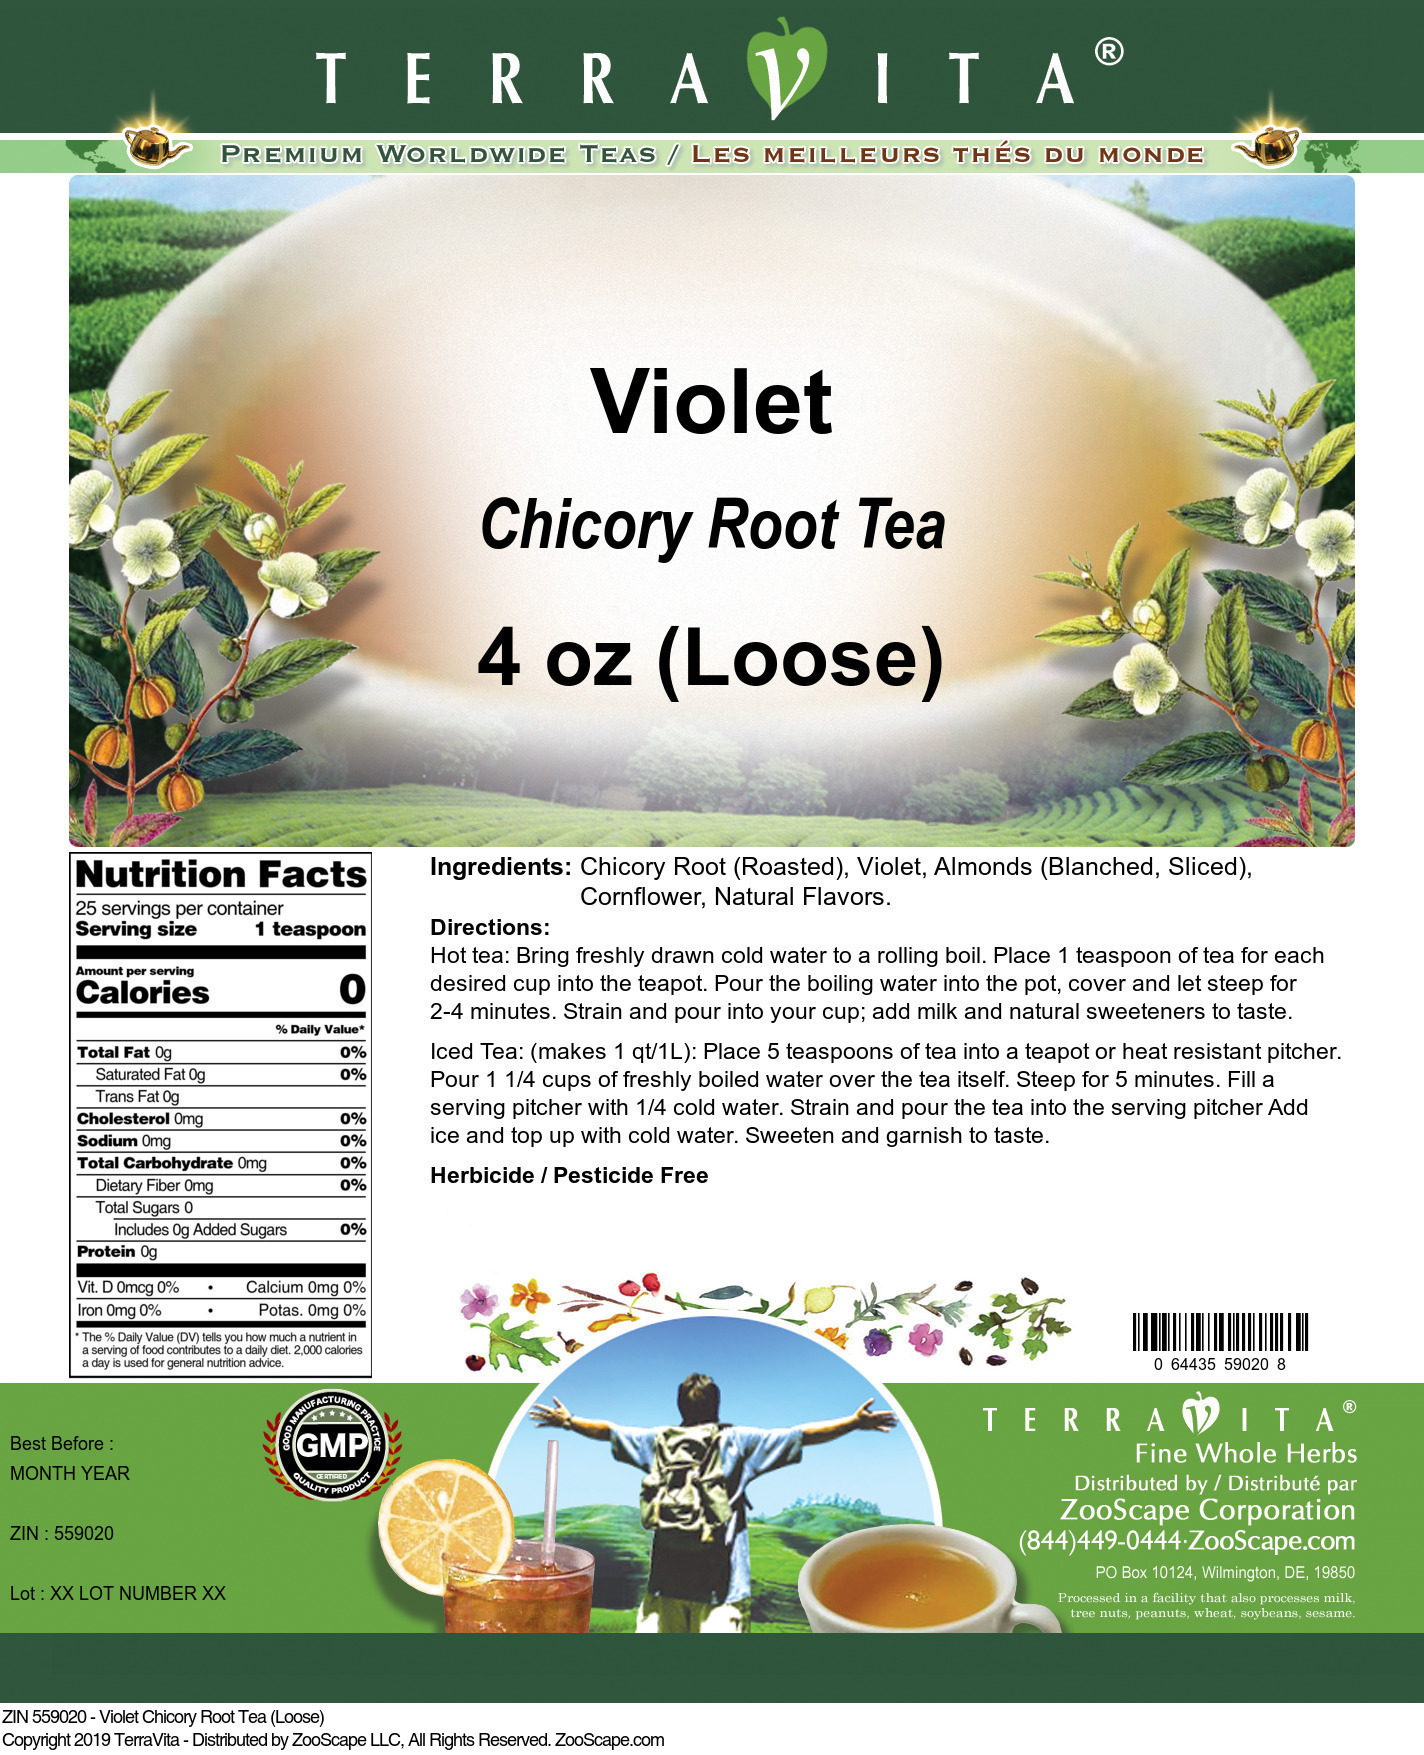 Violet Chicory Root